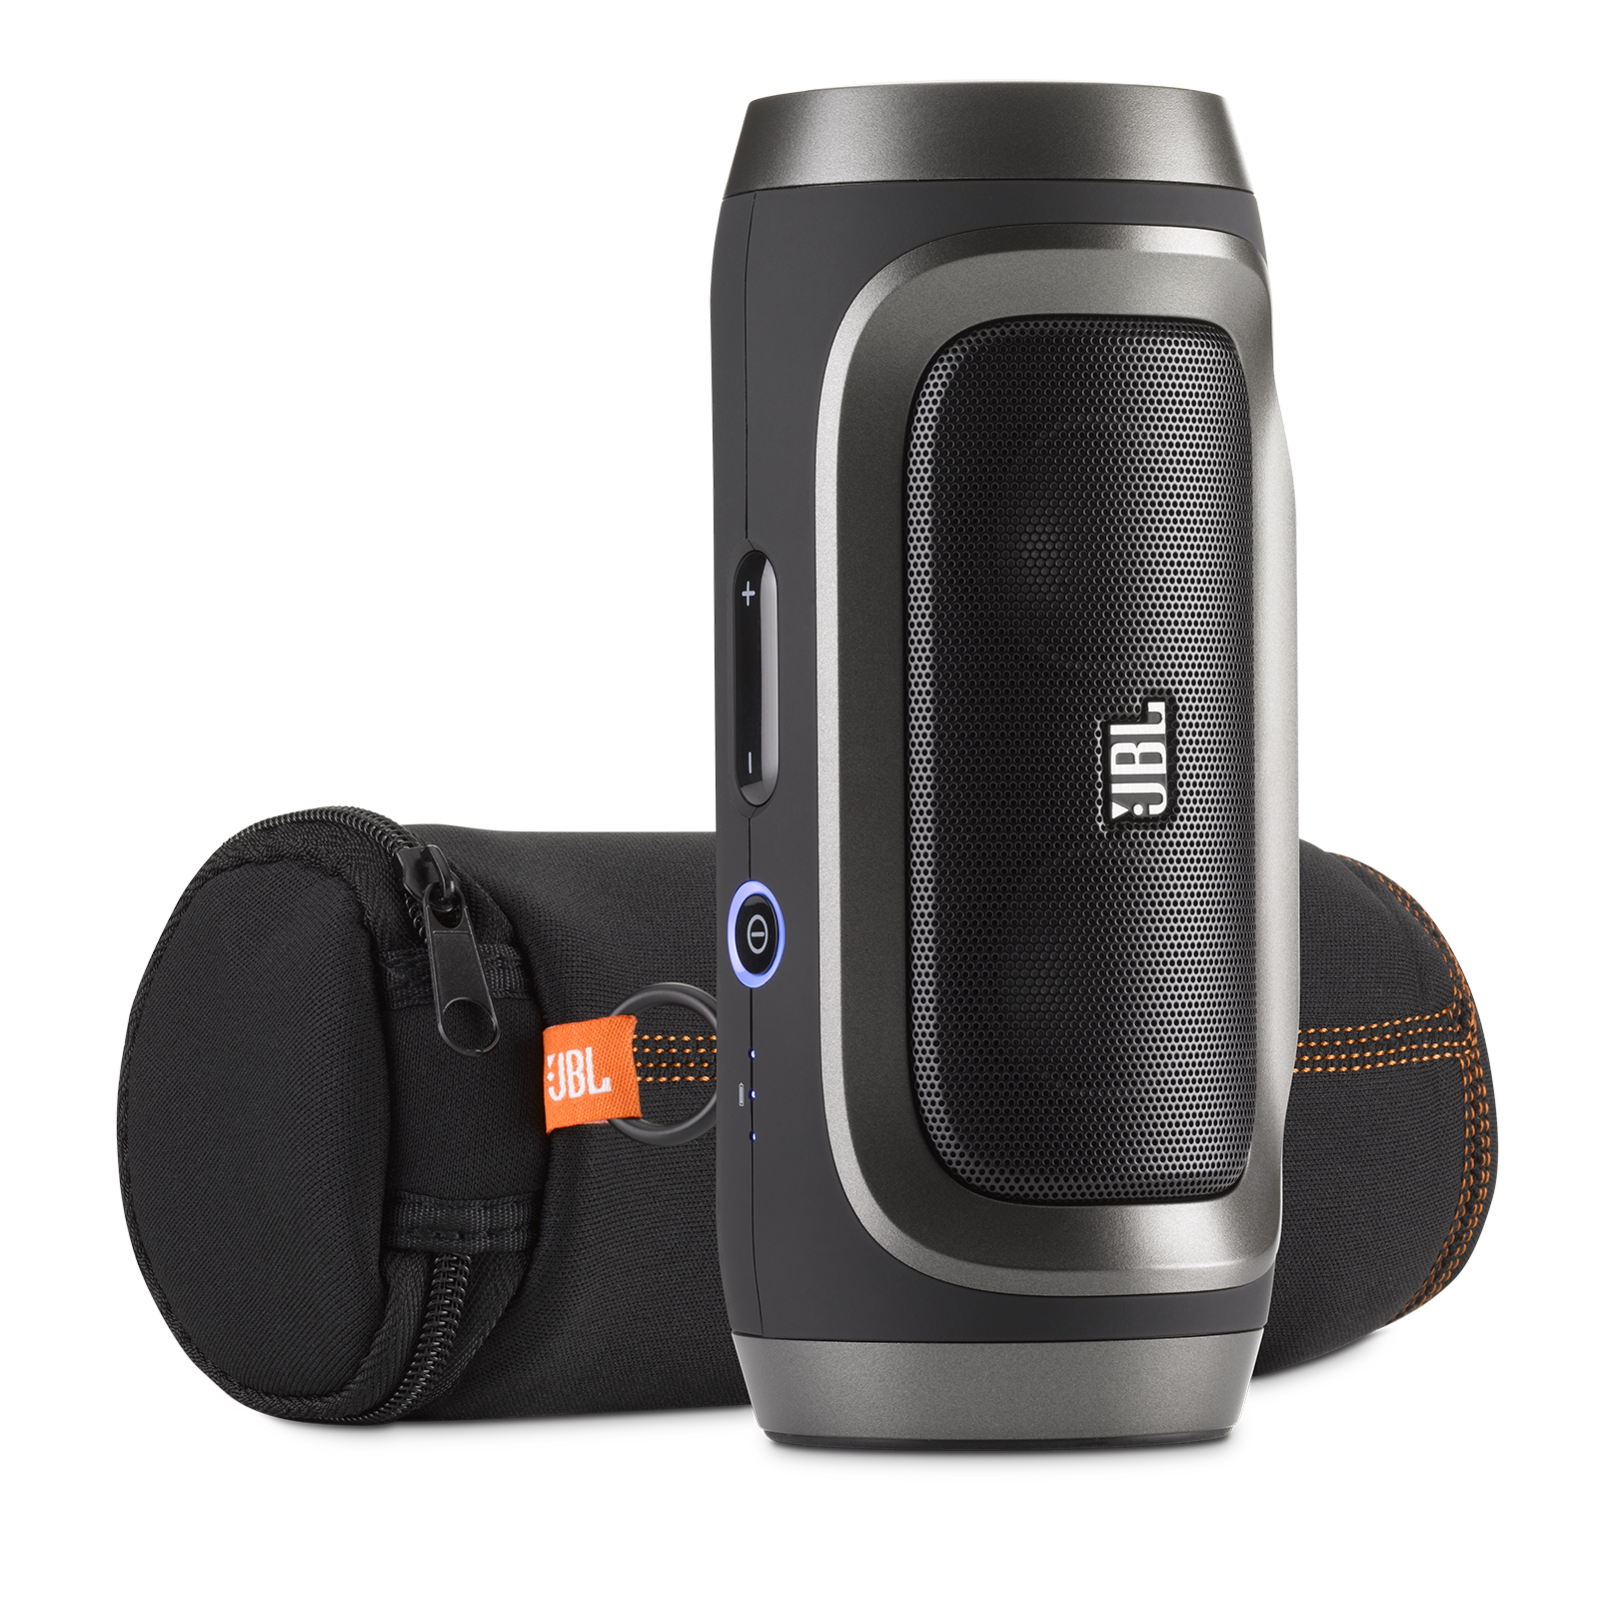 JBL Charge - Black / Silver - Portable Wireless Bluetooth Speaker with USB Charger - Detailshot 2